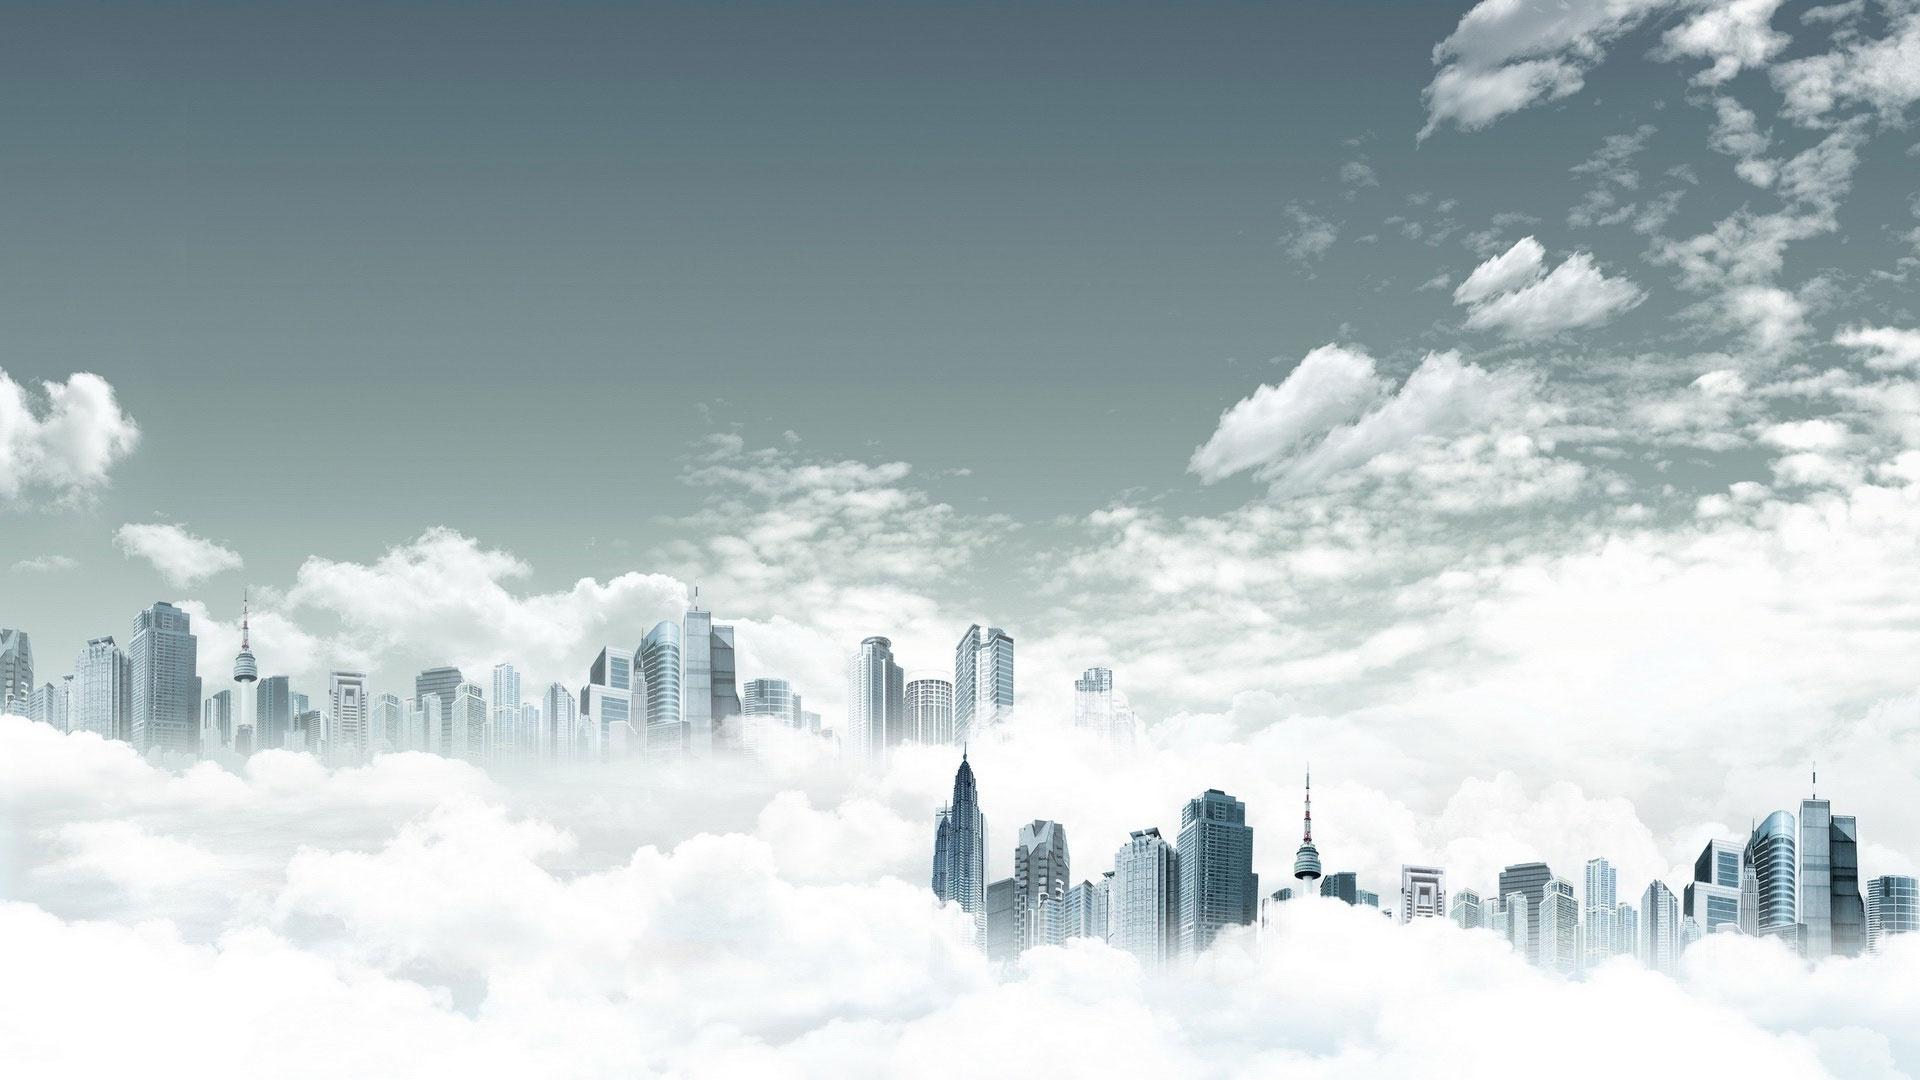 City In Clouds cool wallpaper